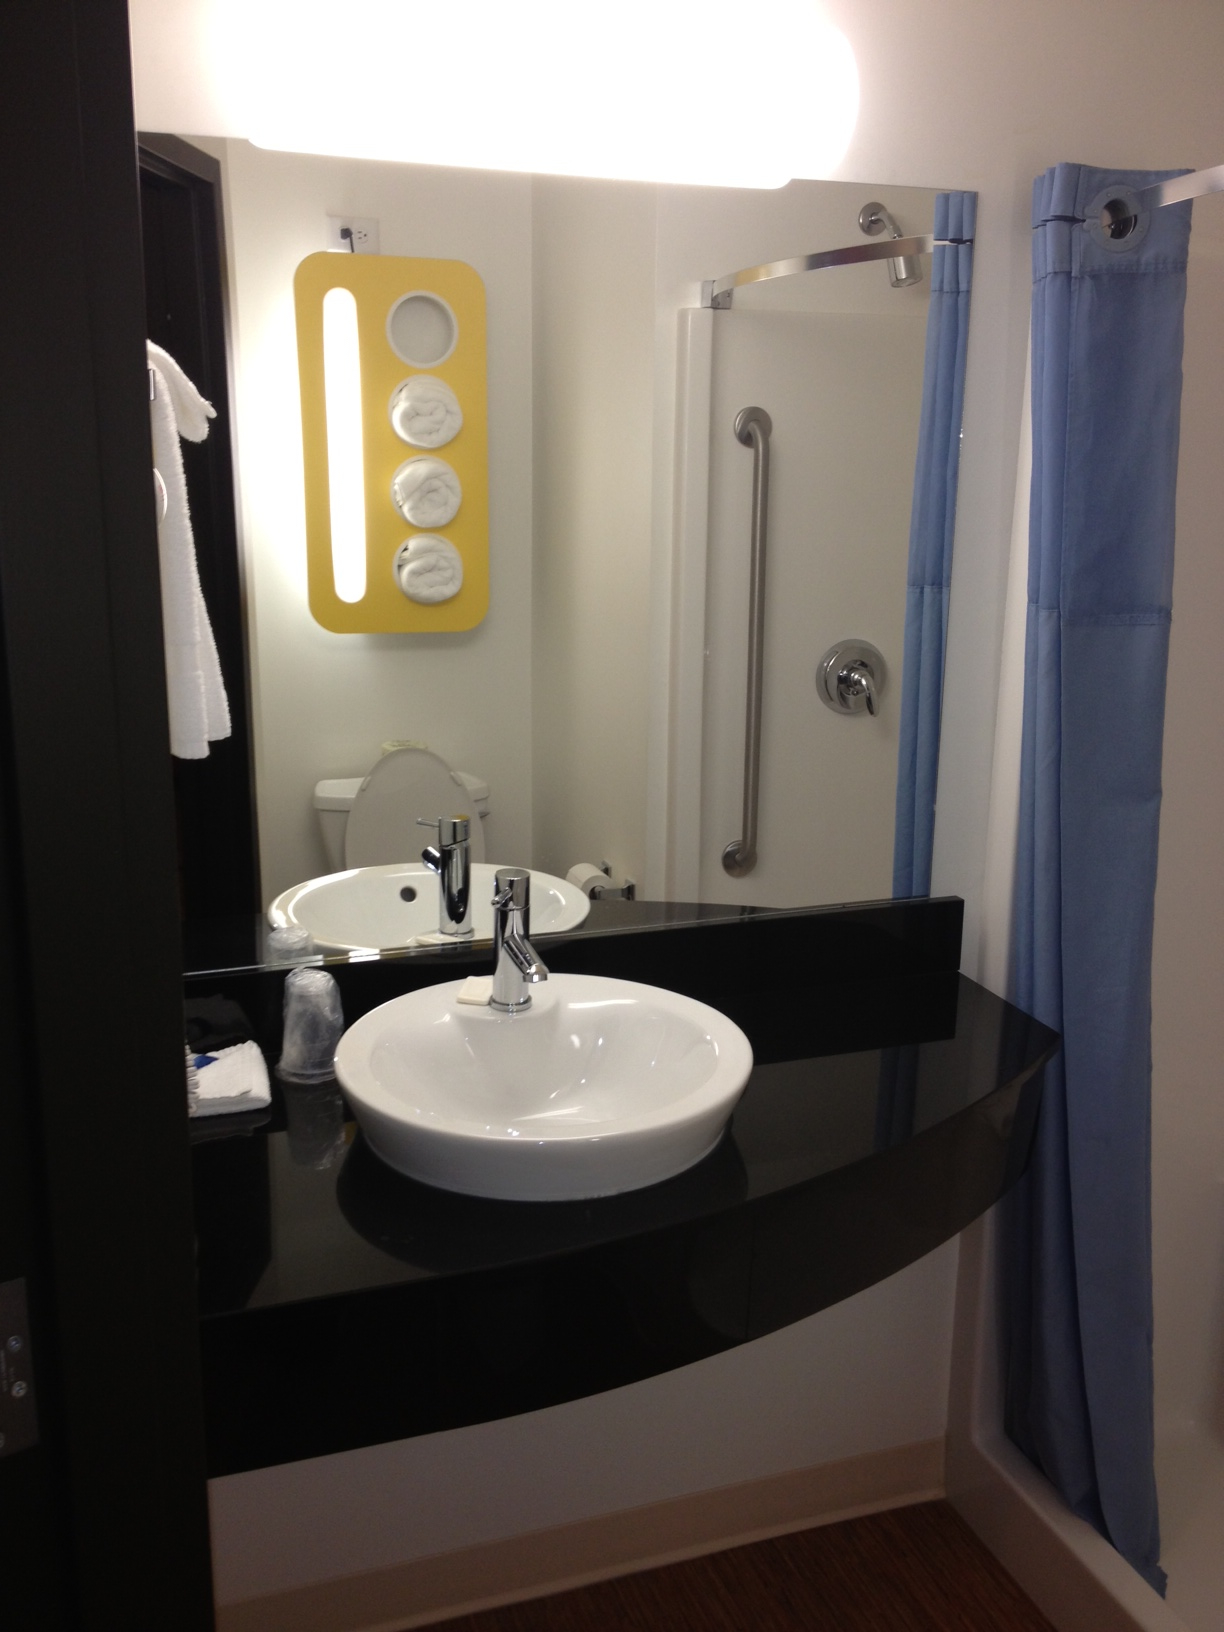 The bathroom was also very contemporary with the yellow towel holder/warmer/light reflected in the mirror.